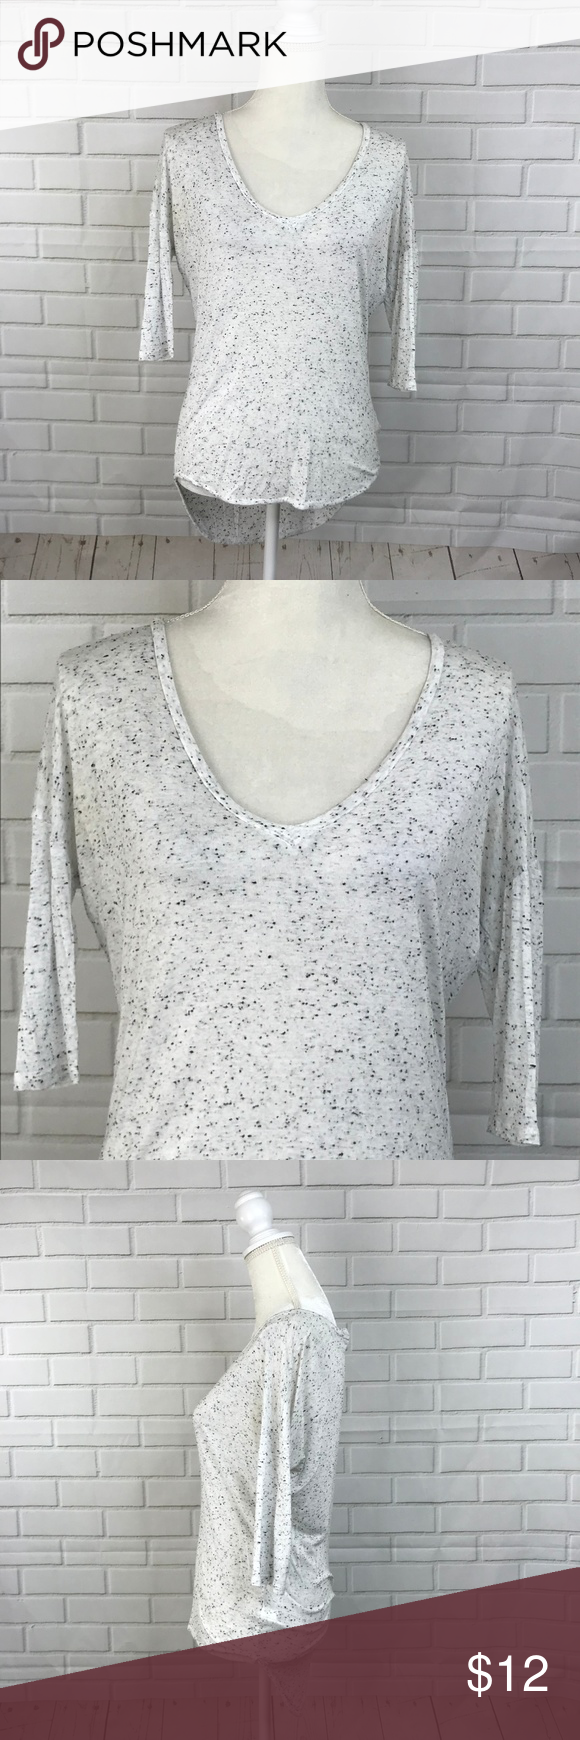 Express one eleven blouse thin top white black dot in my posh